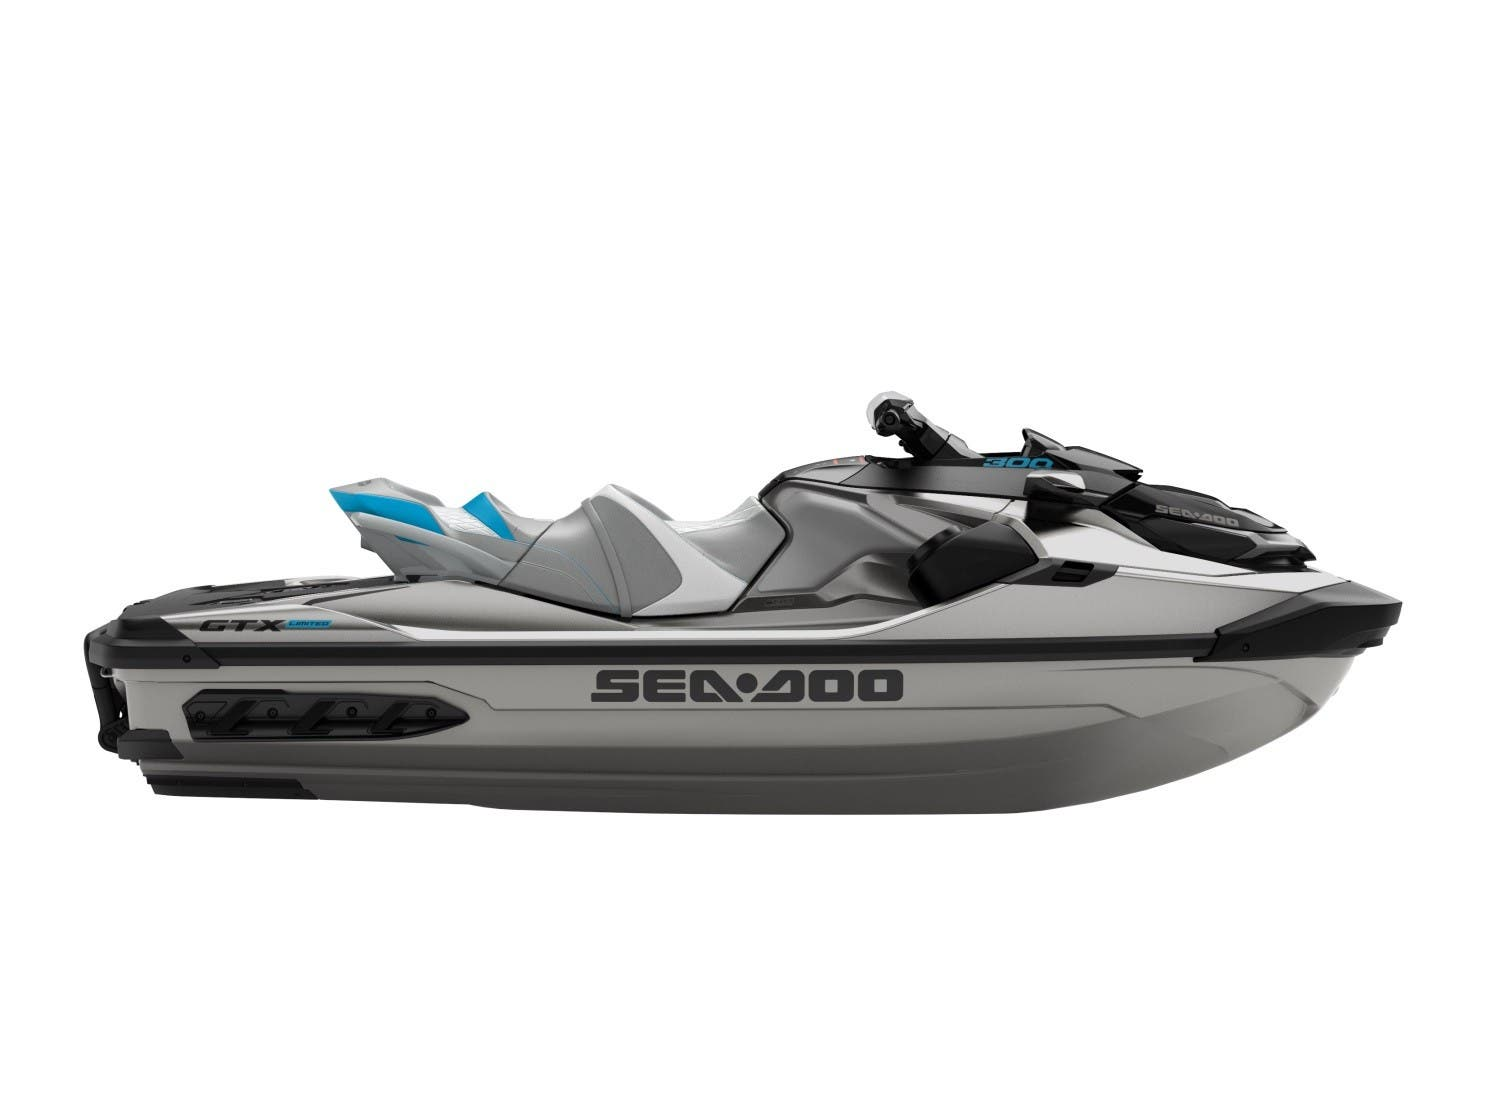 2021 Sea Doo PWC boat for sale, model of the boat is GTX Limited 300 SS iDF & Image # 5 of 5